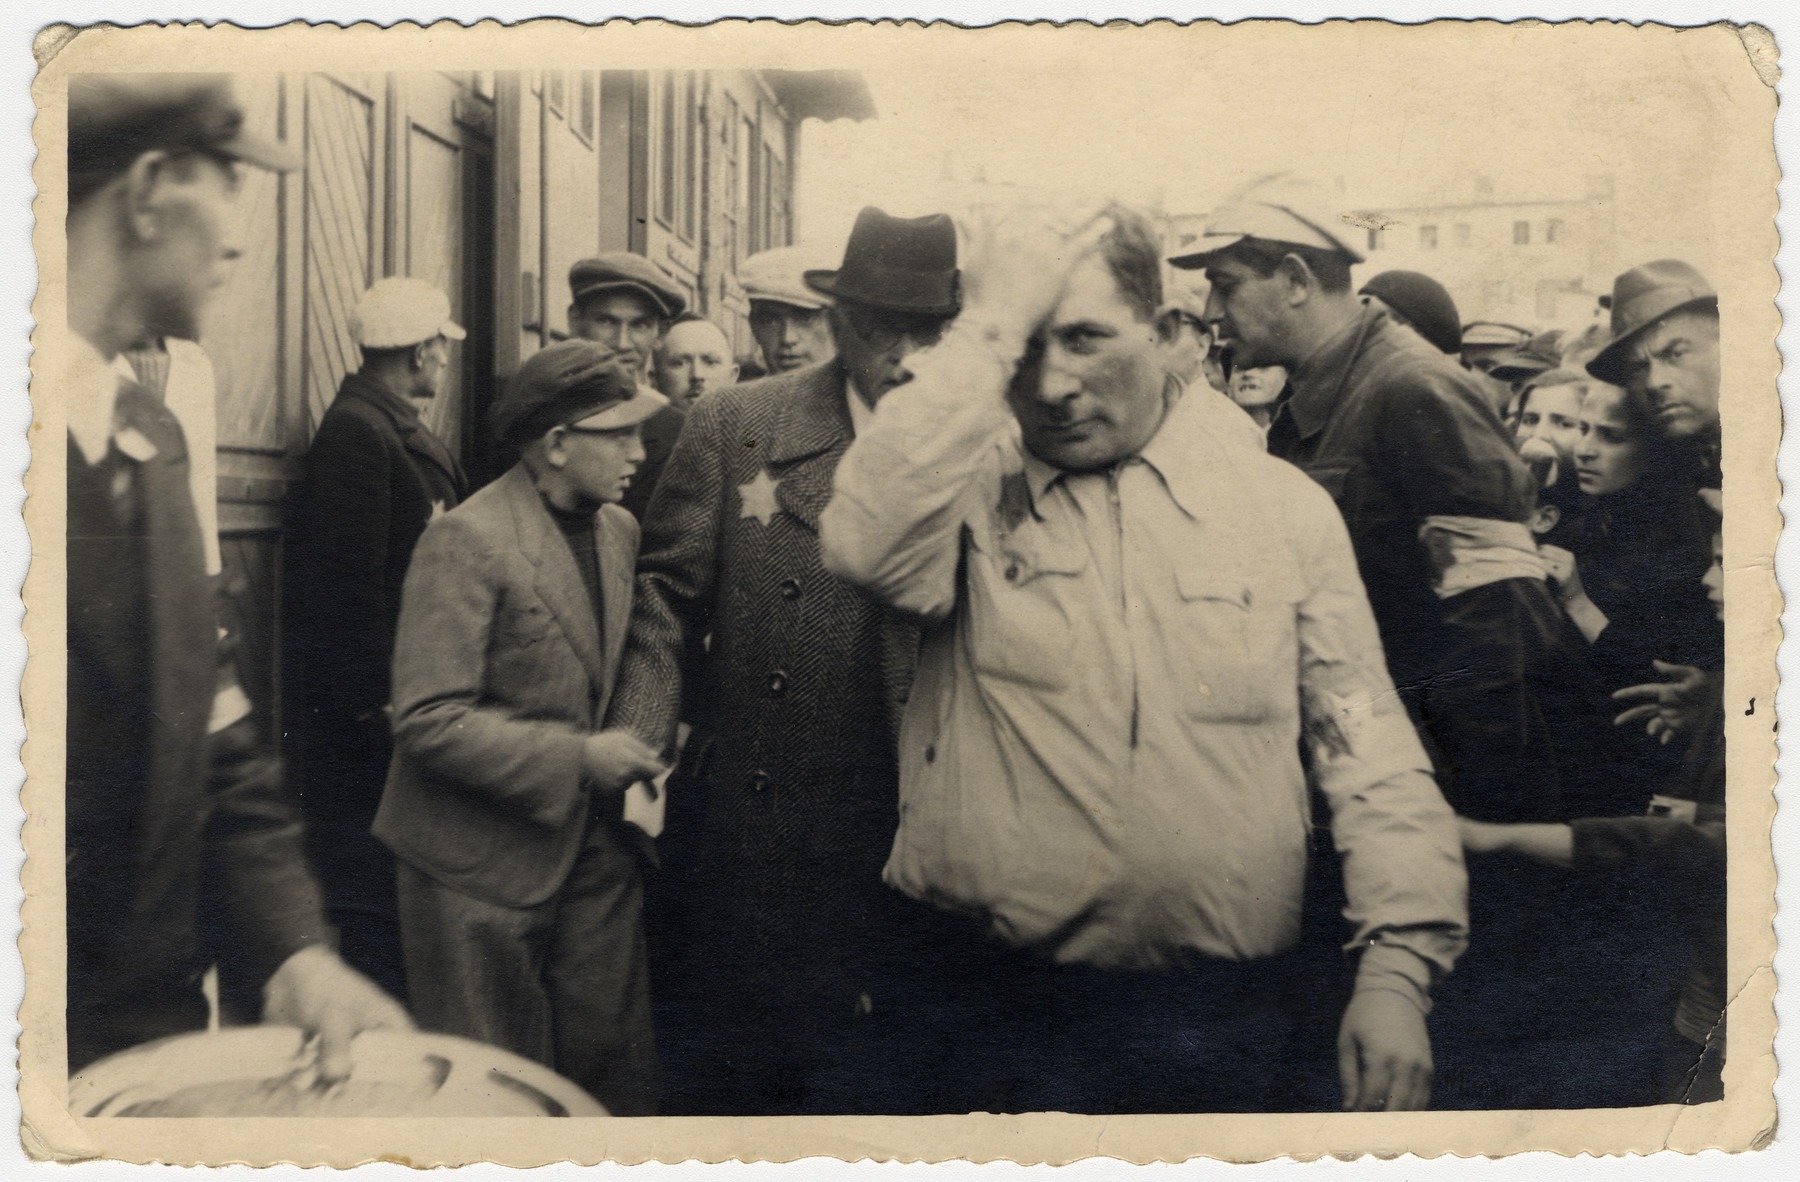 """A young man hands a petition to Mordechai Chaim Rumkowski surrounded by other ghetto residents.   The man in the foreground is Sergeant Kaufman.  The Yiddish inscription on the back reads: """"Sergeant Kaufman from the Jewish guard, here protecting the Chairman M.Ch. Rumkowski, who allowed a chosen child to approach him with a petition.  August 17, 1941"""""""